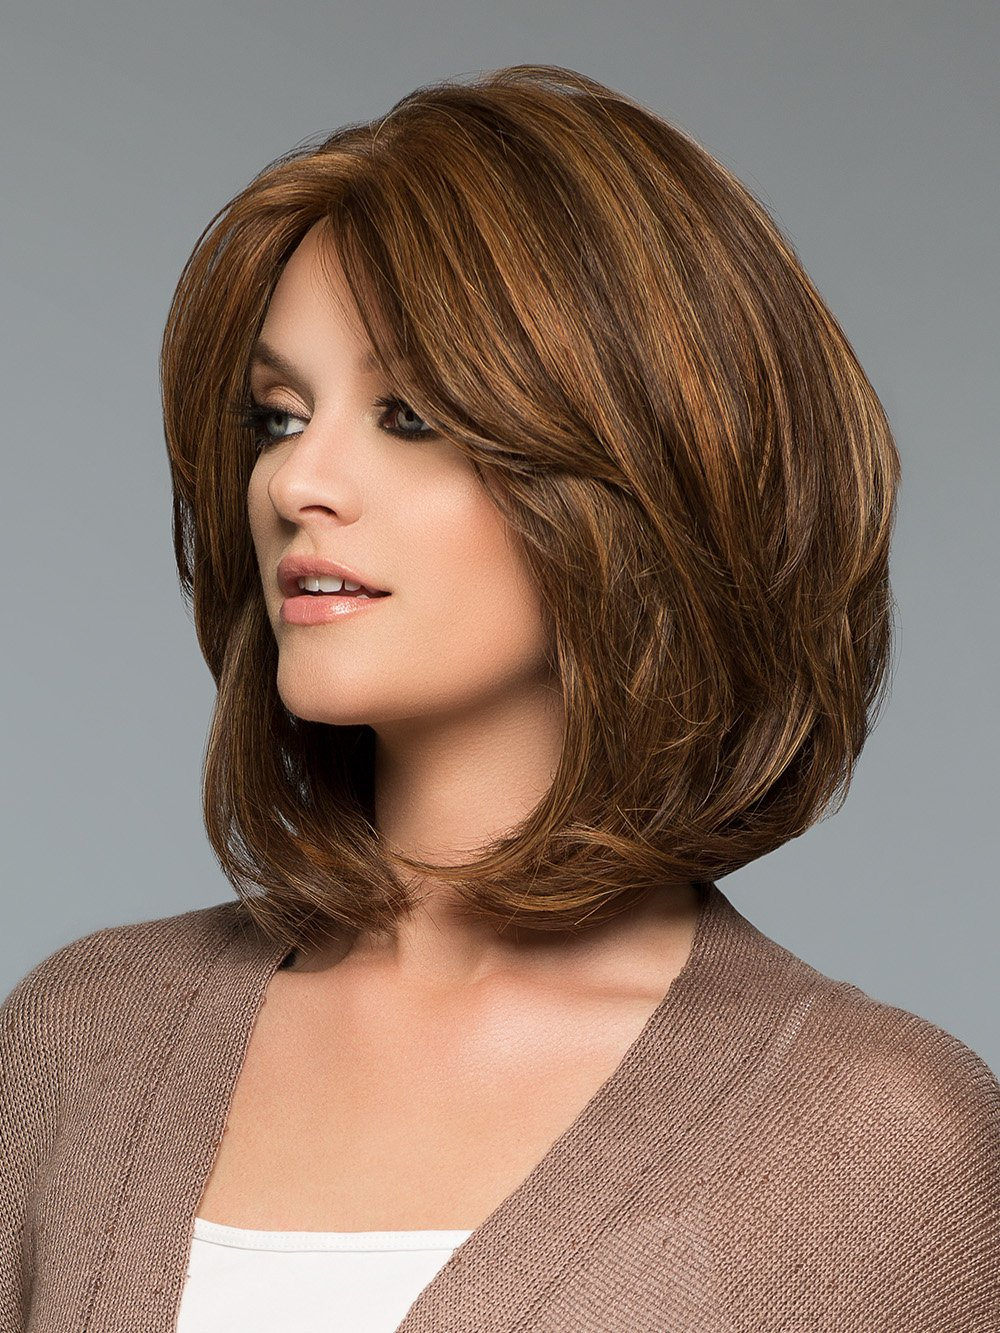 Medi Tach By Wigpro 100 Human Hair Wigs Com The Wig Experts